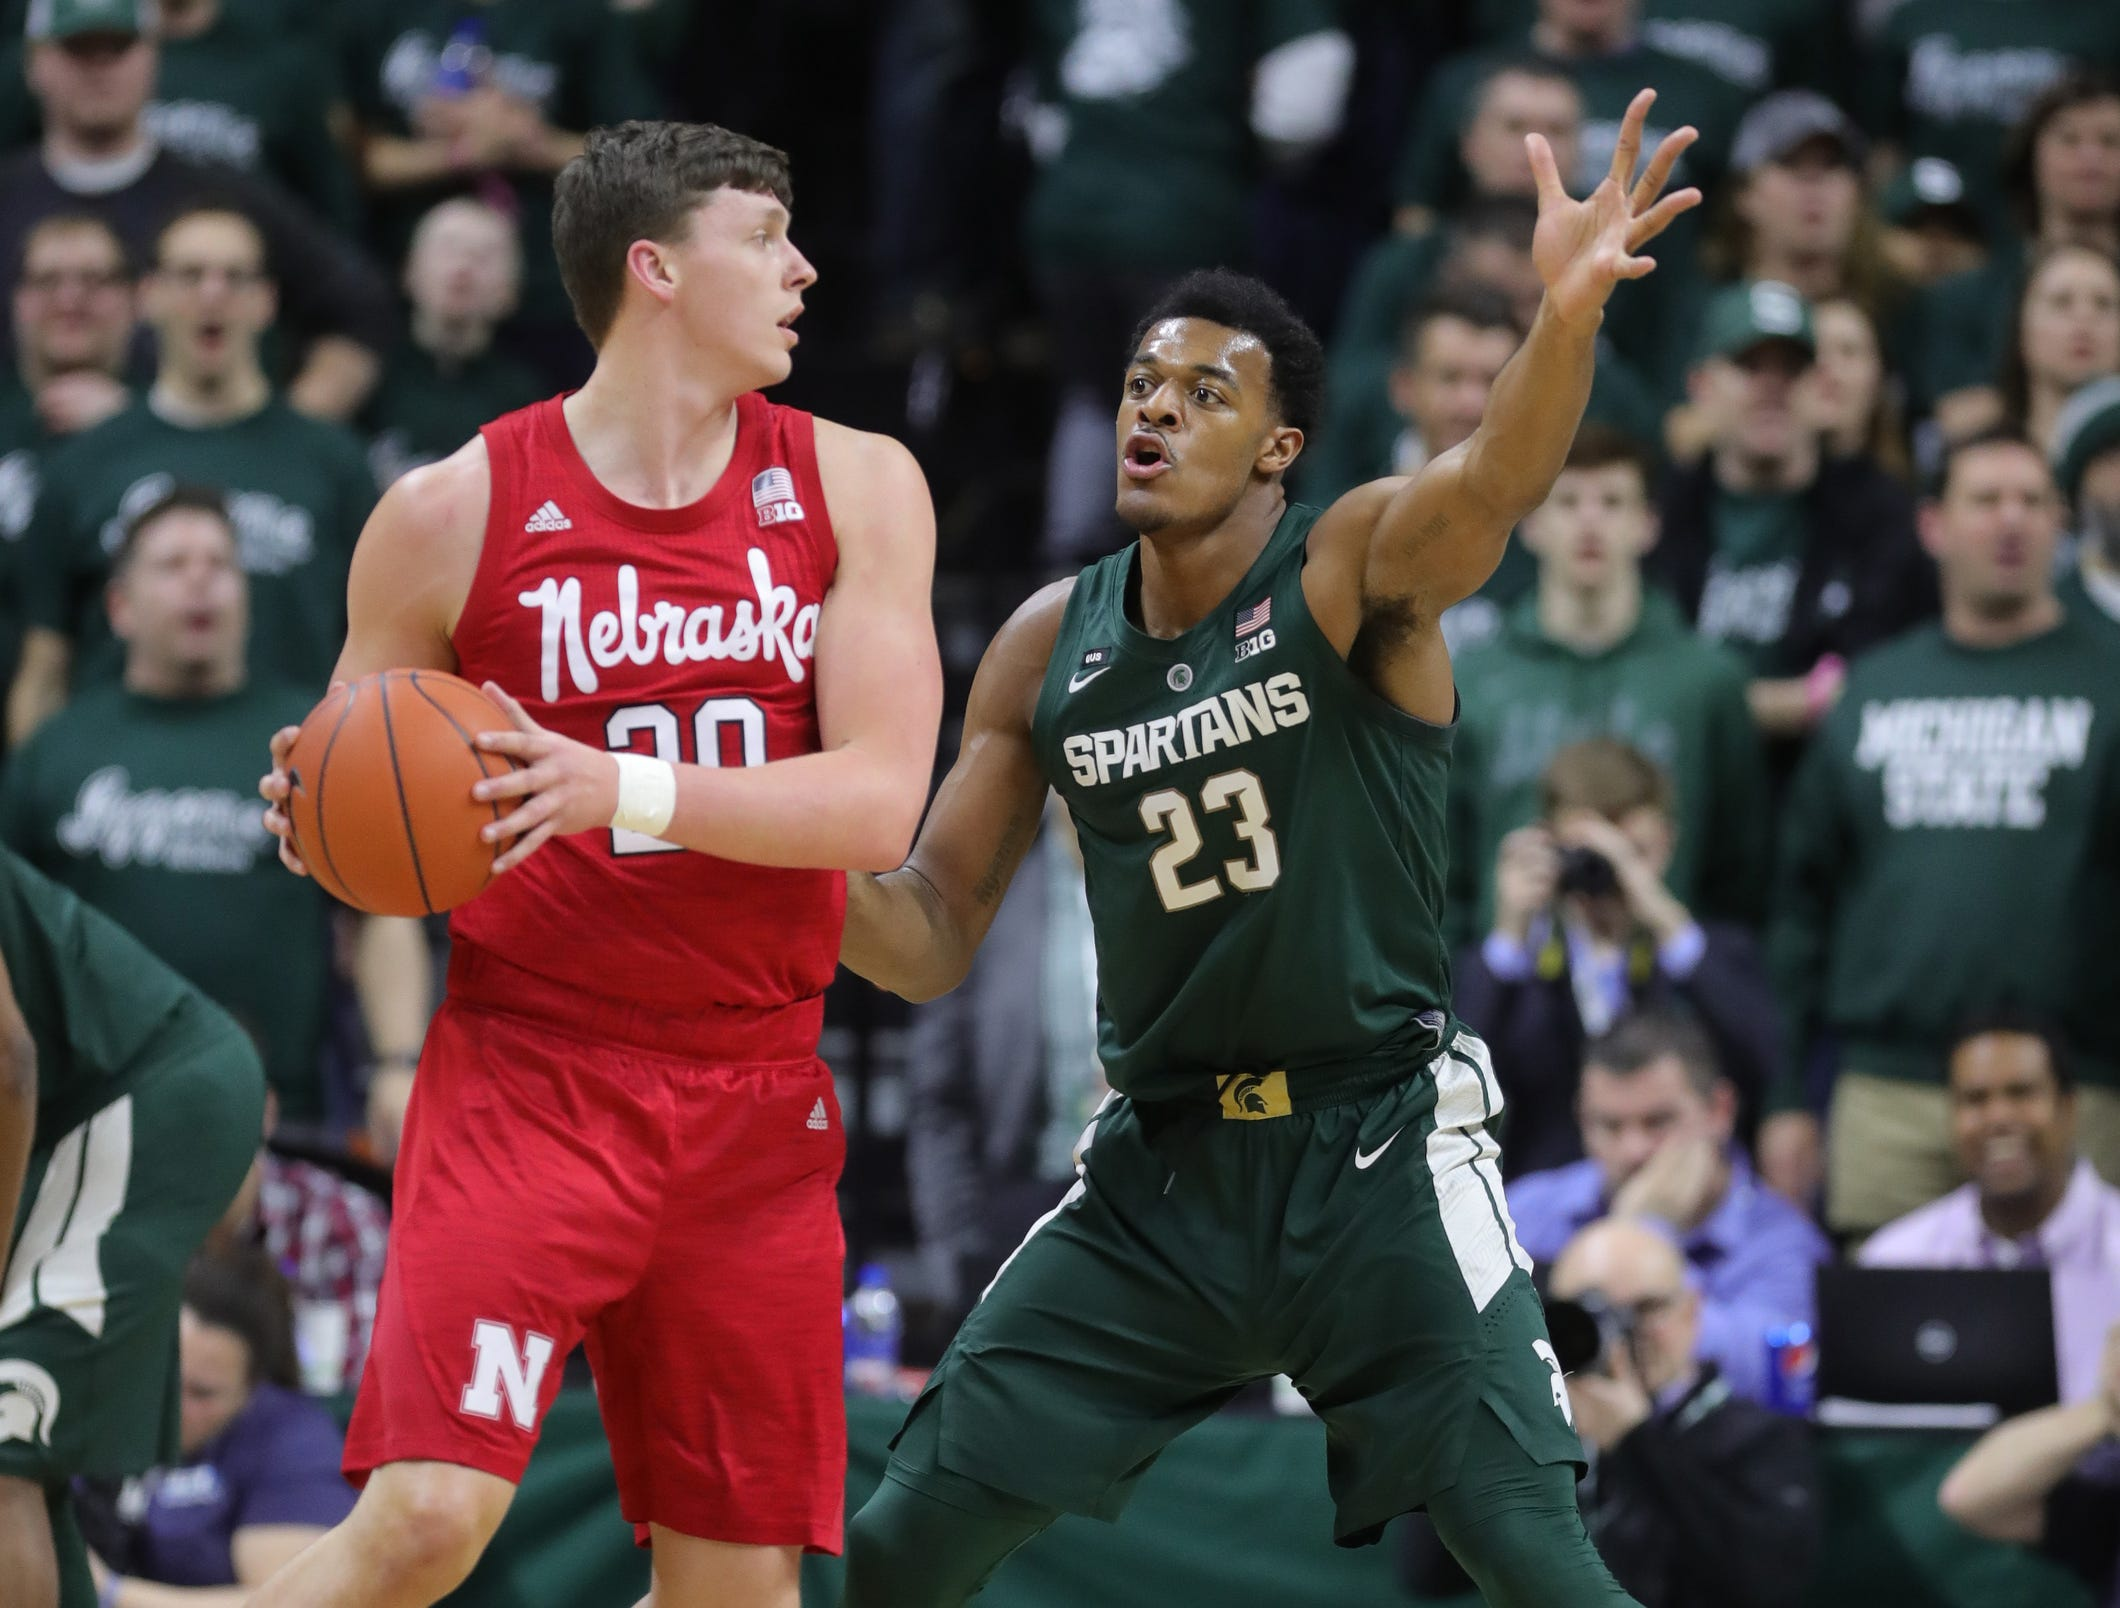 Michigan State forward Xavier Tillman defends against Nebraska forward Tanner Borchardt during first half action Tuesday, March 5, 2019 at the Breslin Center in East Lansing, Mich.